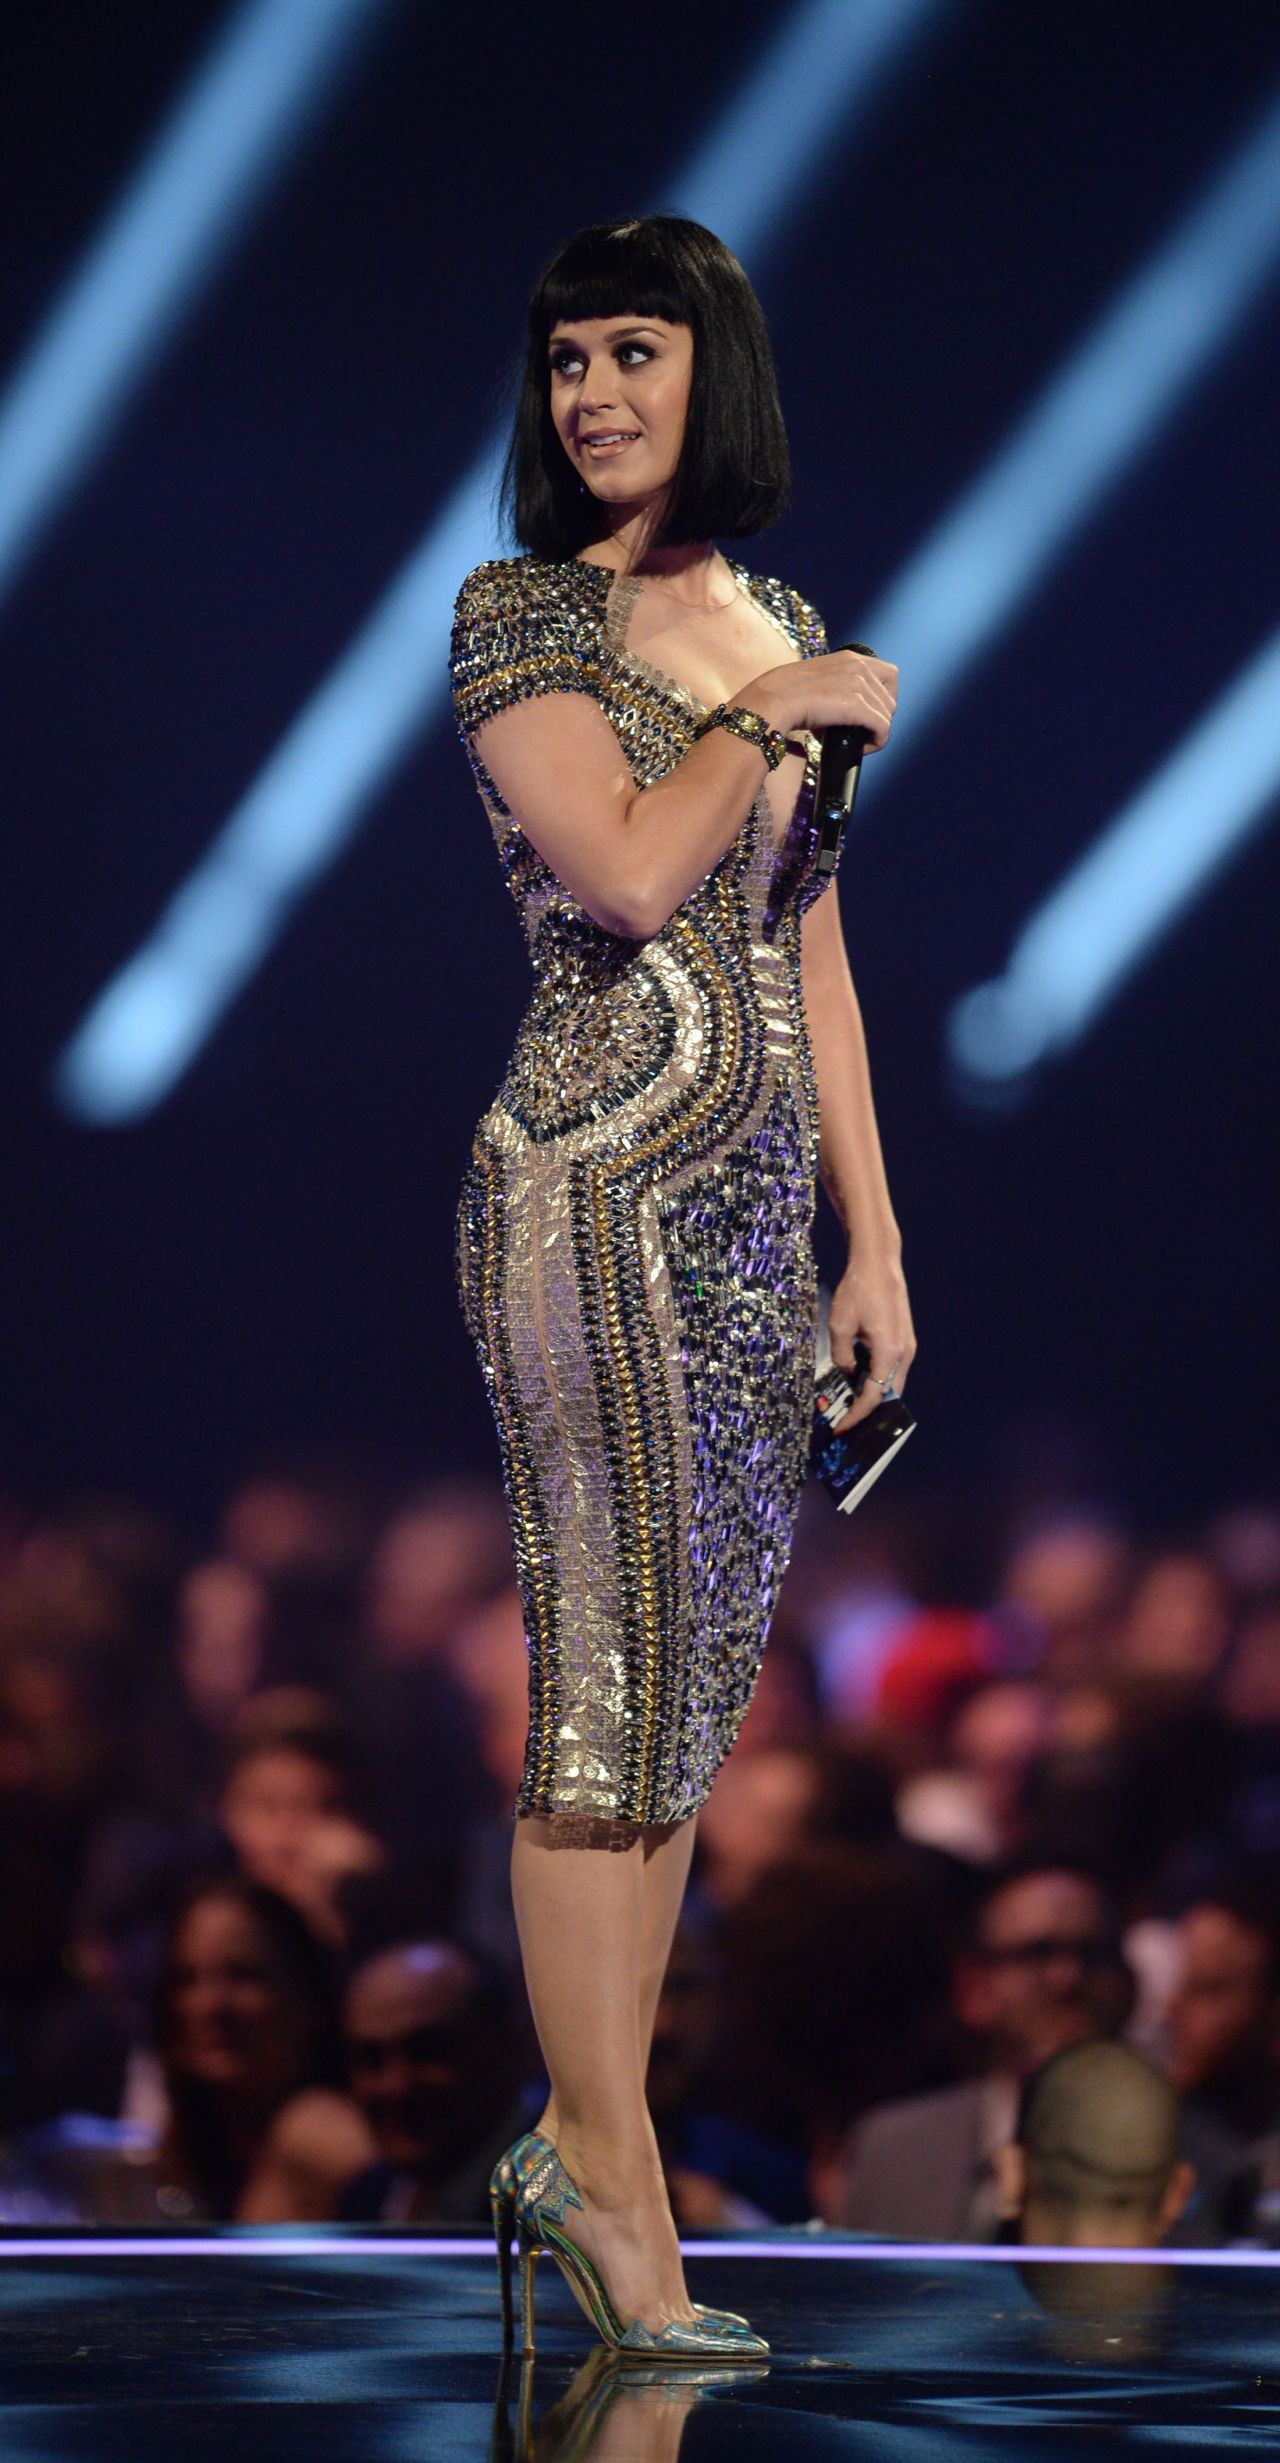 Katy Perry in Sexy Dress For The BRIT Awards 2014